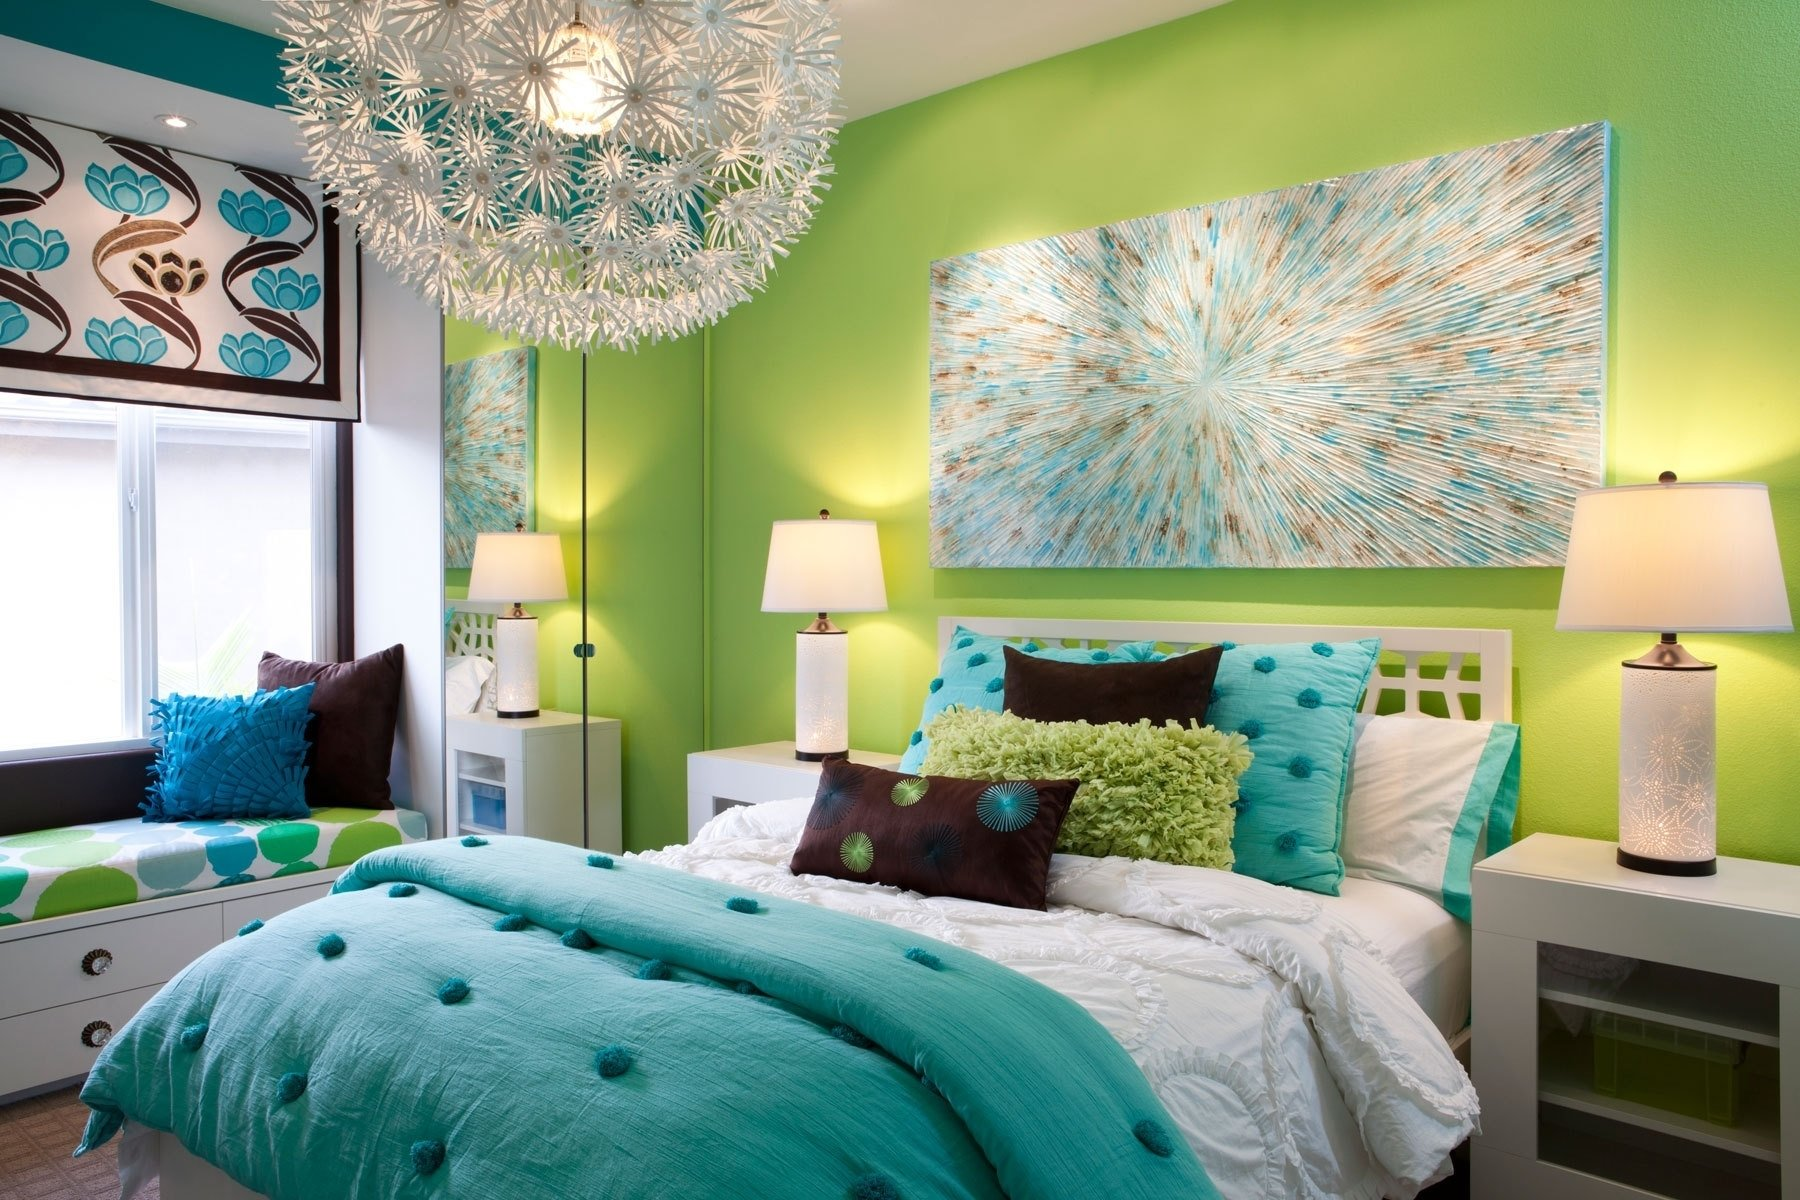 10 Attractive Blue And Green Bedroom Ideas bedroom decorating ideas blue and green fresh with bedroom 2021